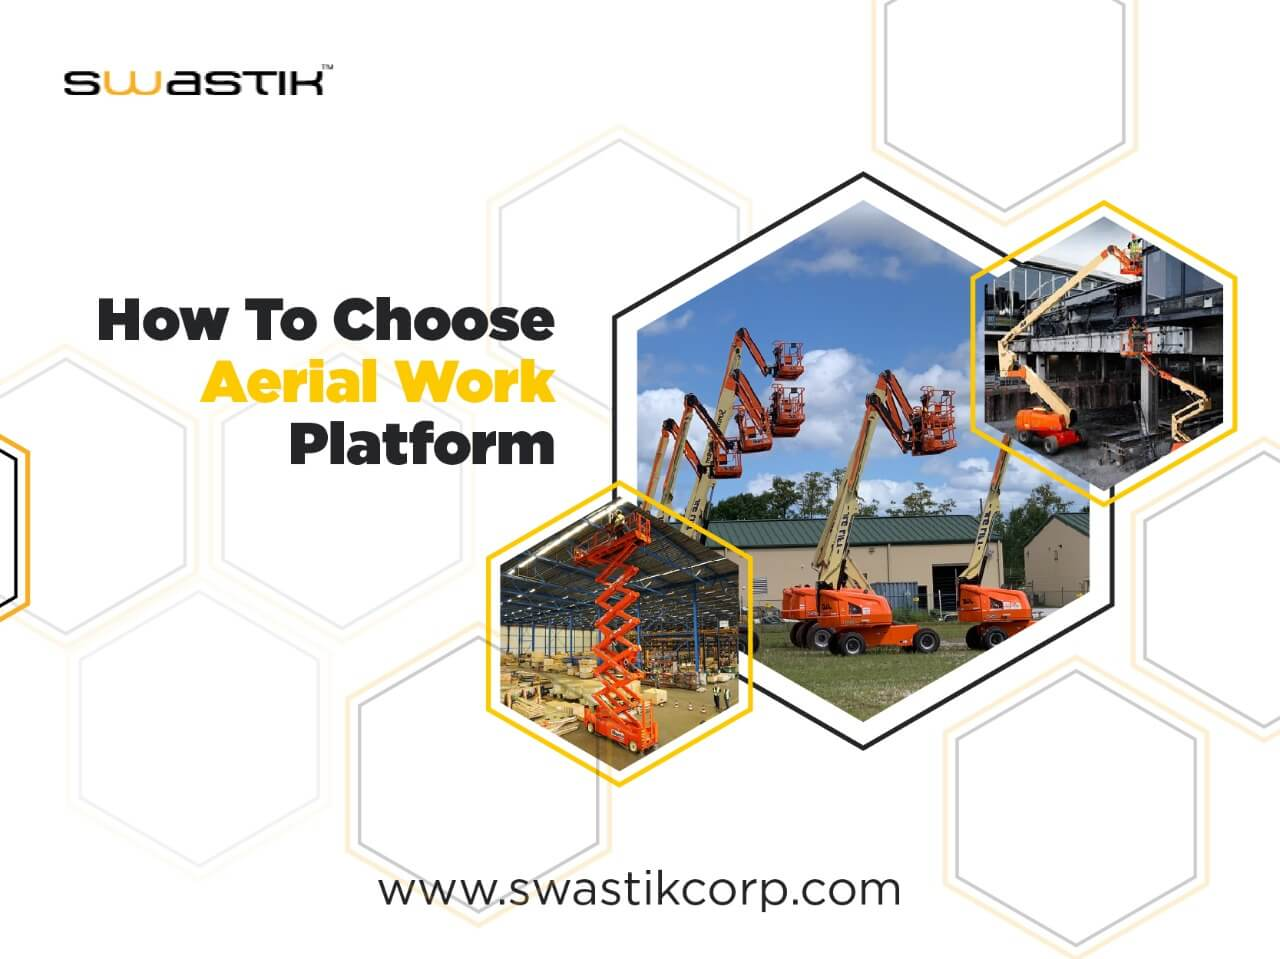 How to choose a right aerial work platform